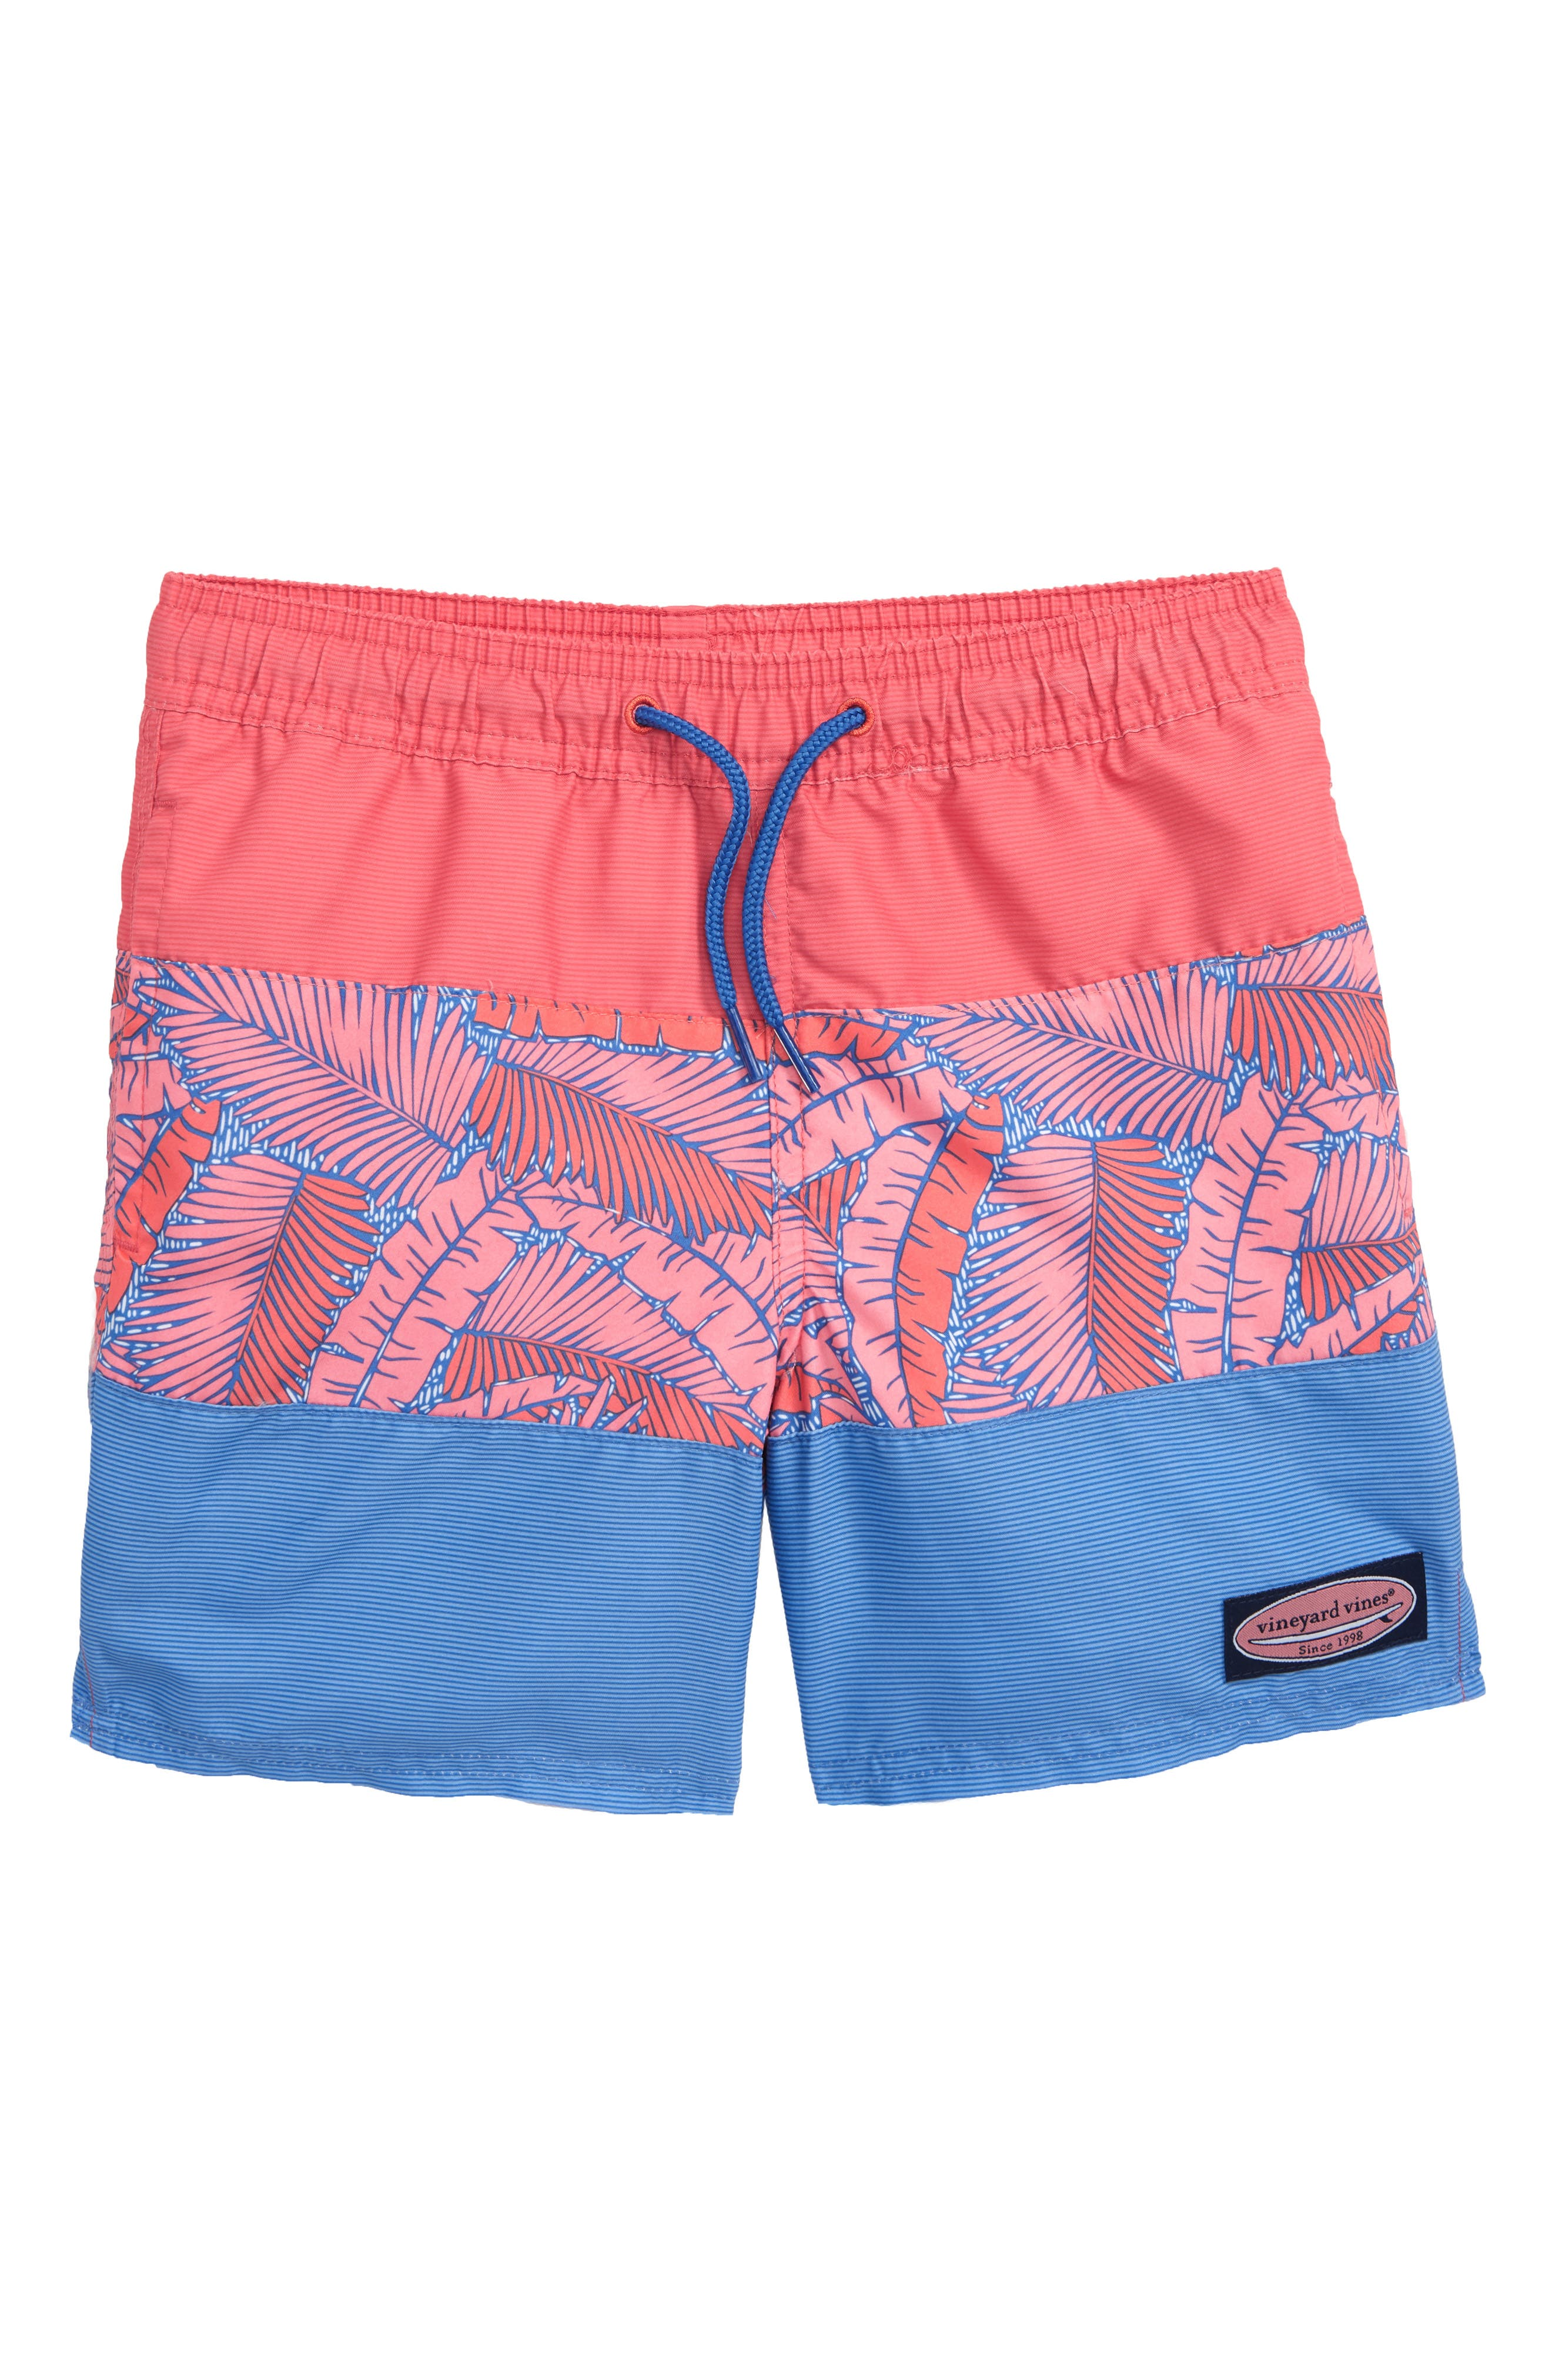 VINEYARD VINES,                             Island Palm Pieced Chappy Swim Trunks,                             Main thumbnail 1, color,                             WASHED NEON PINK